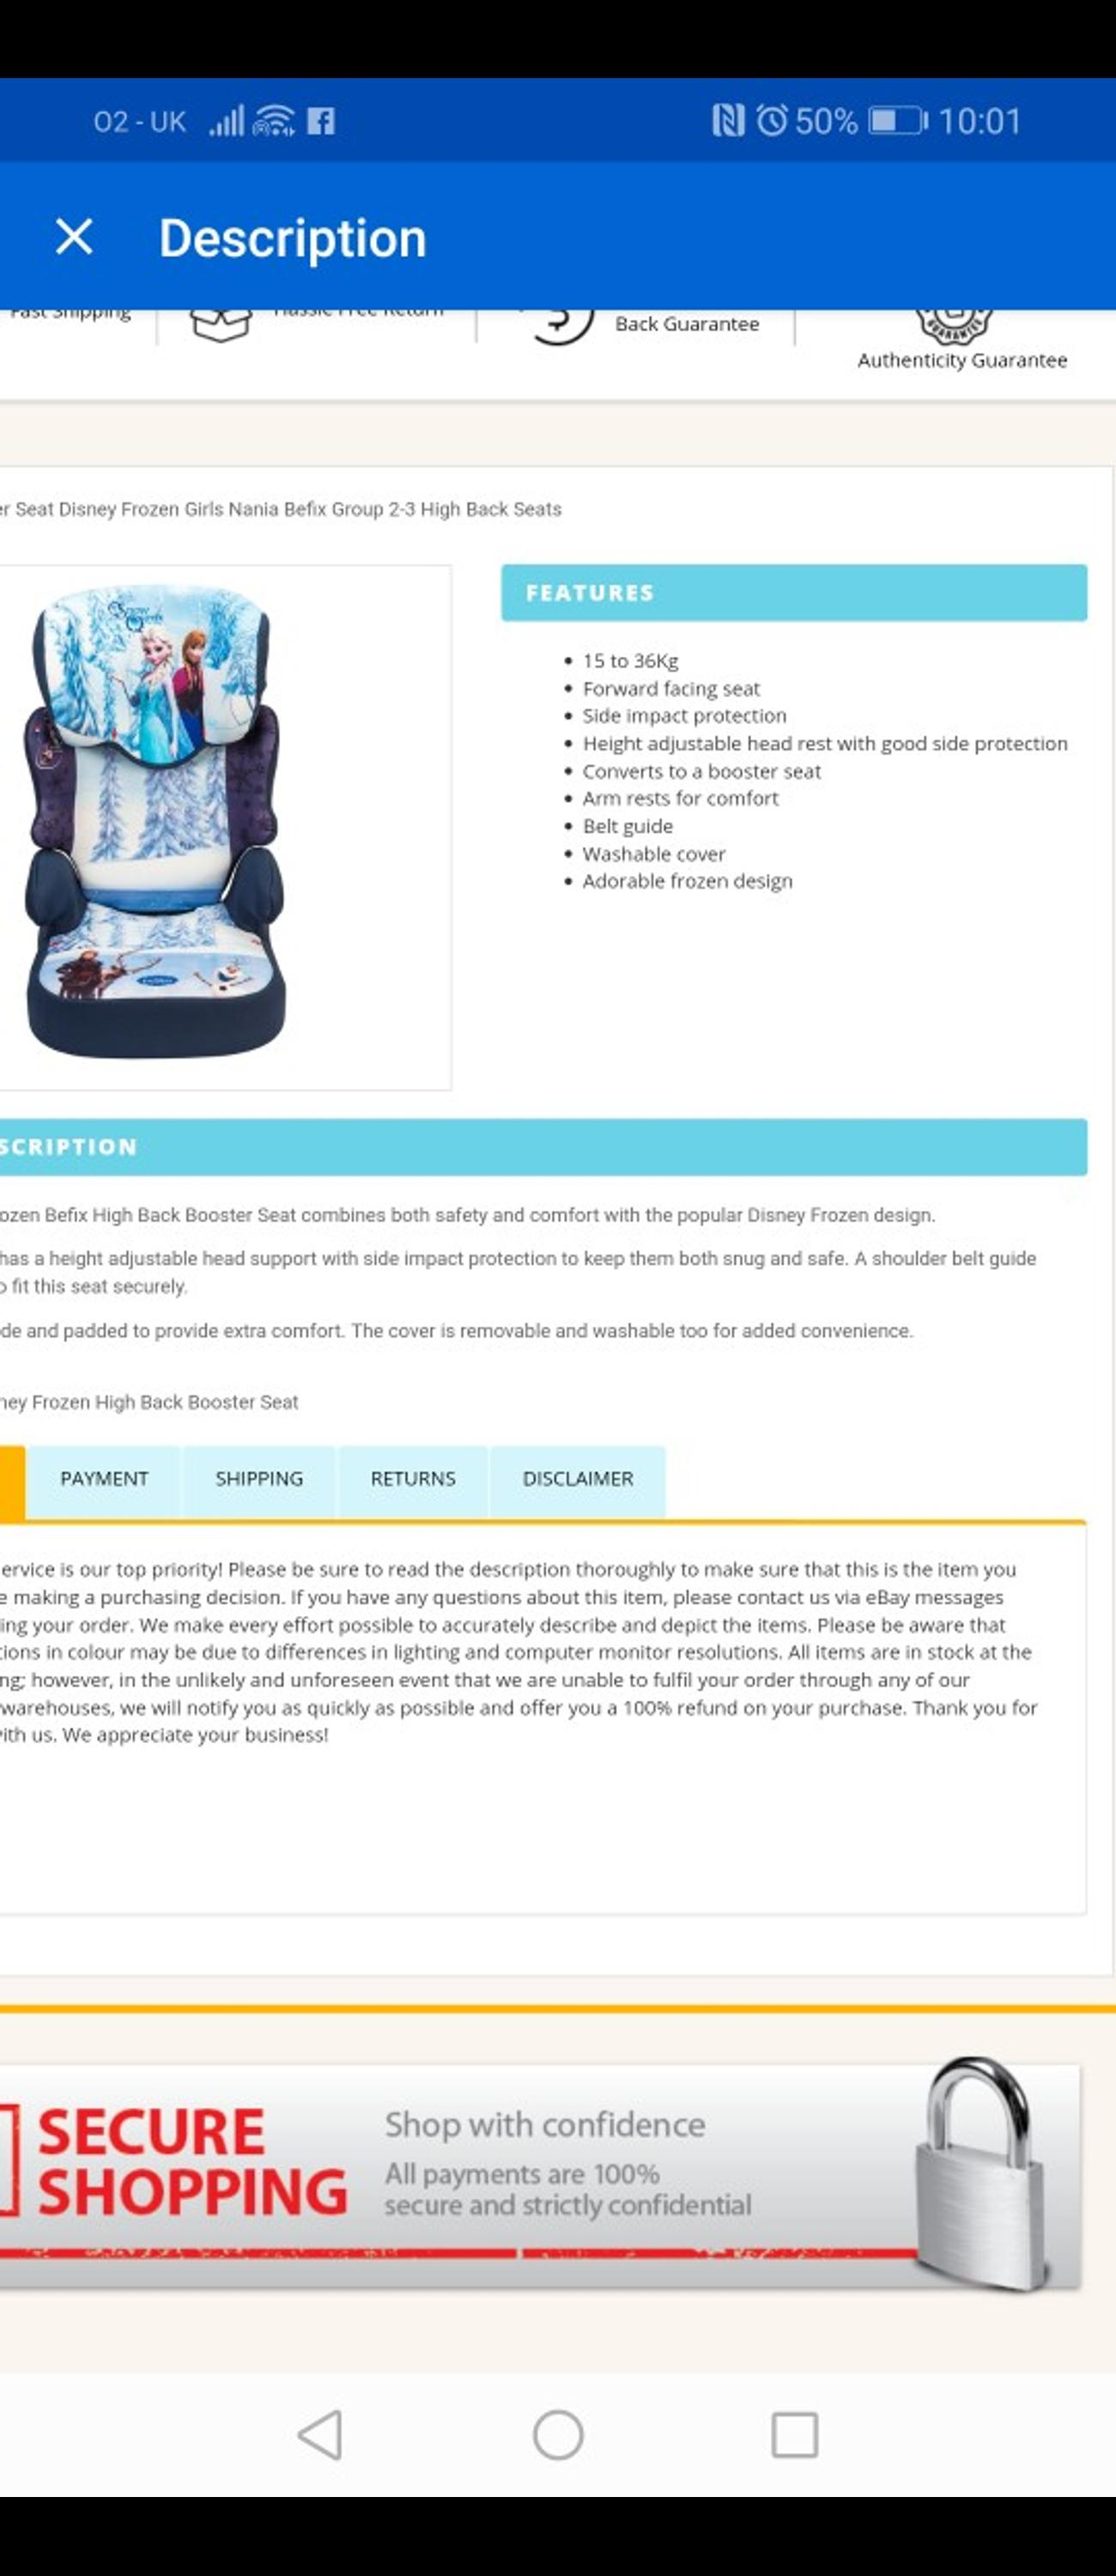 Tremendous Frozen Car Seat In Middlesbrough For 15 00 For Sale Shpock Uwap Interior Chair Design Uwaporg